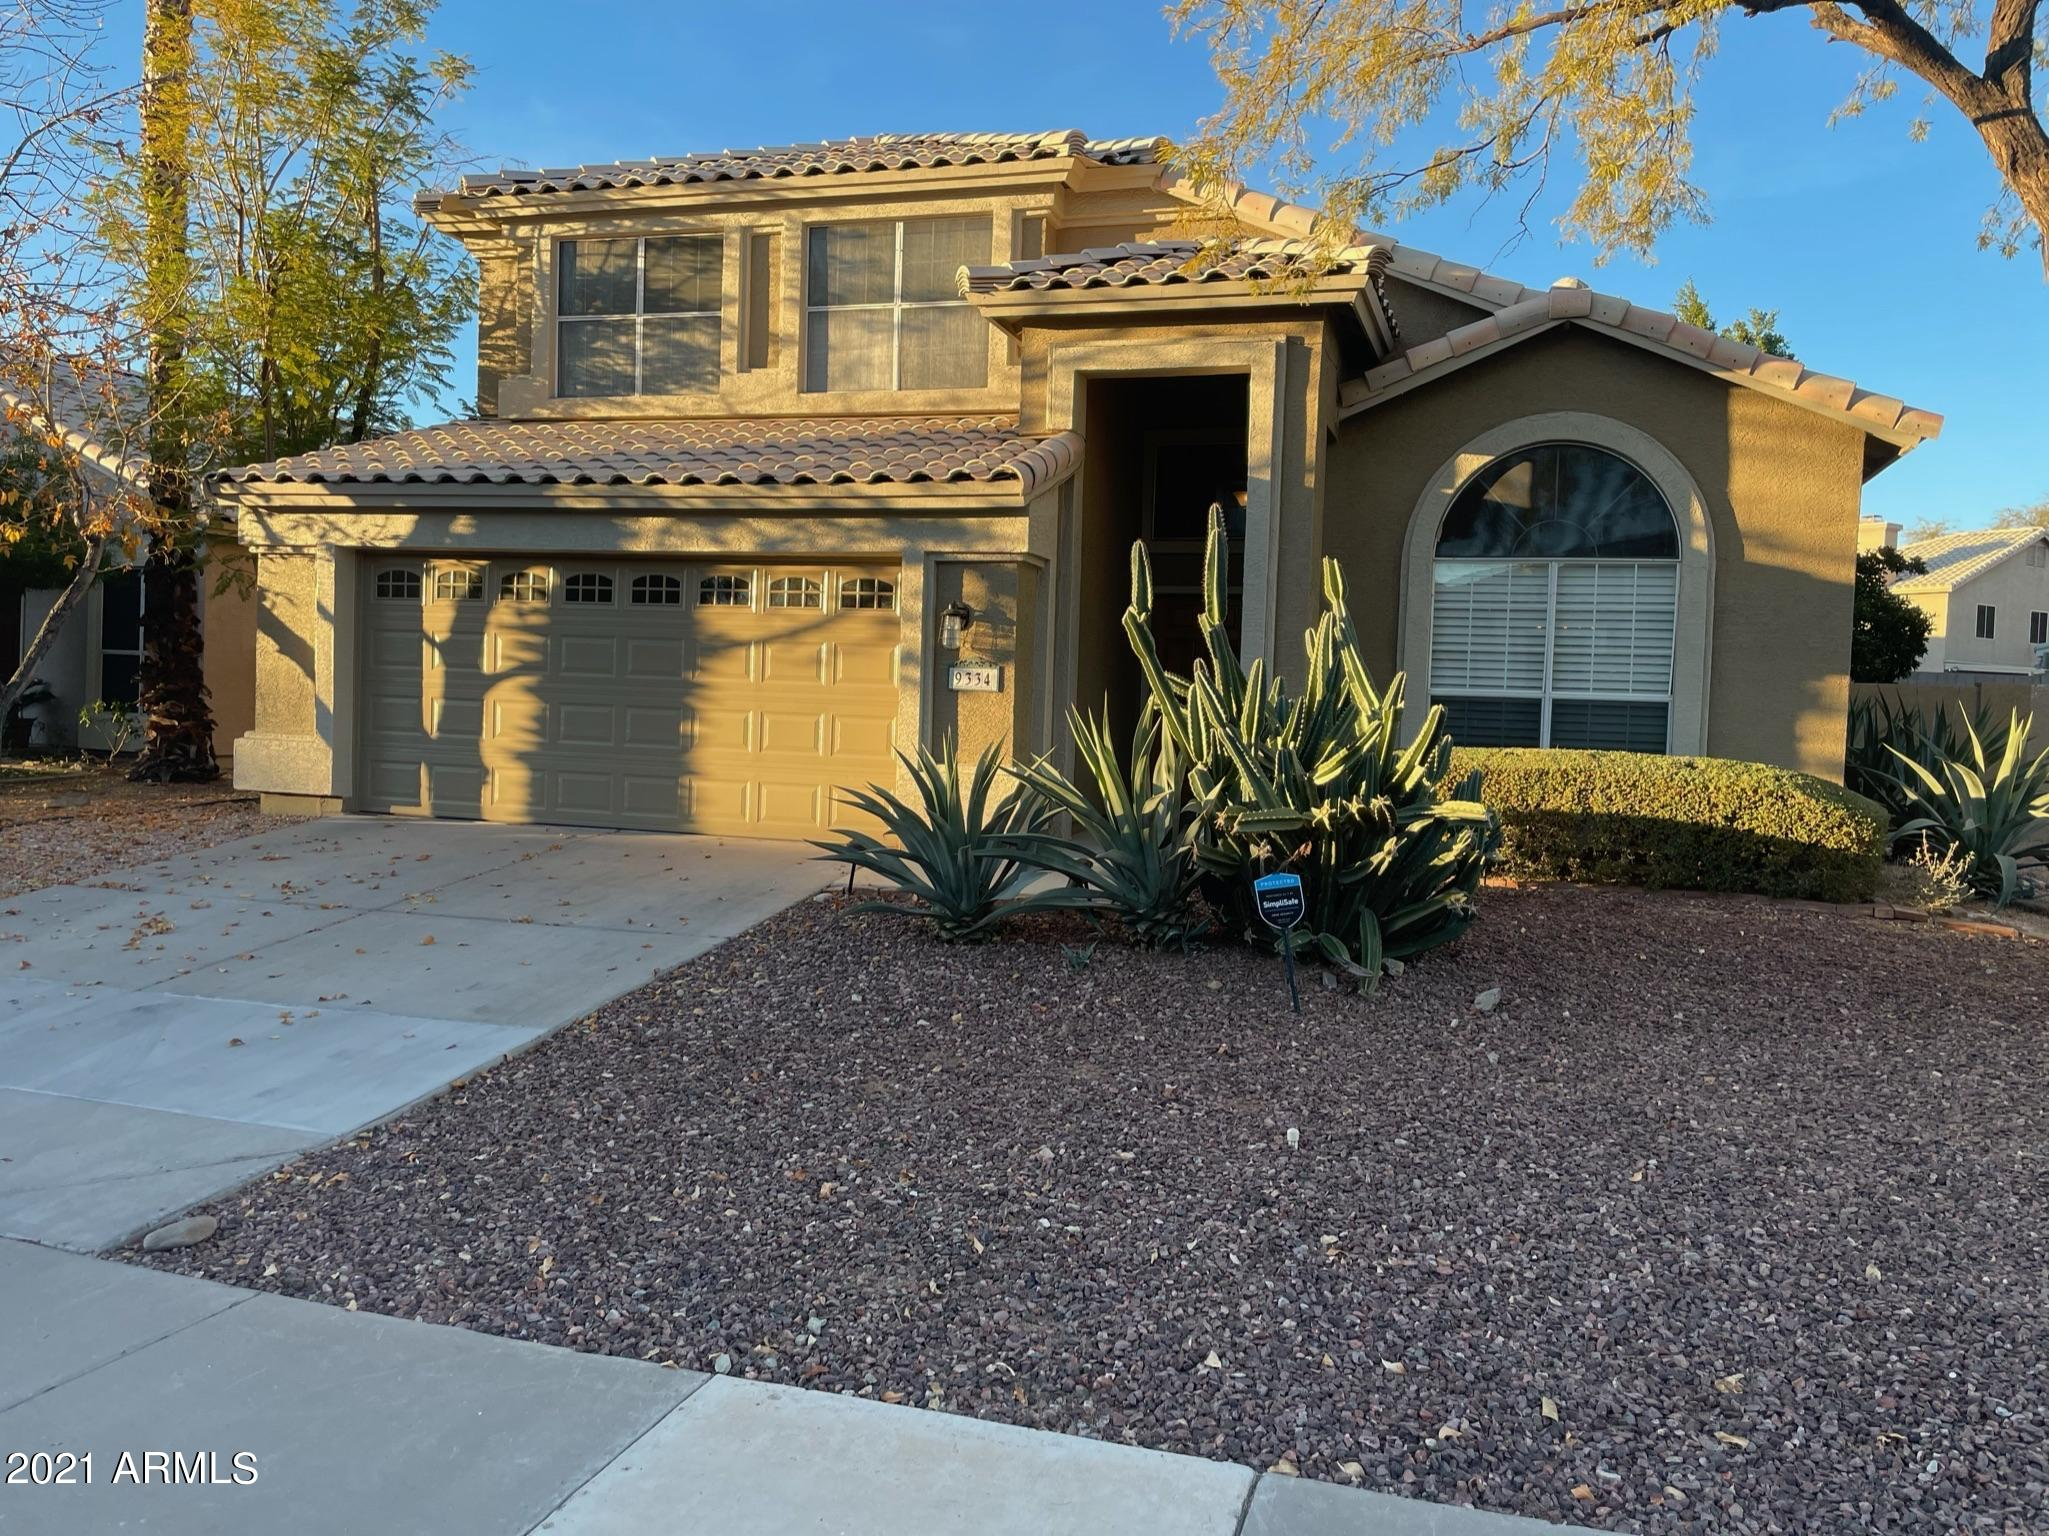 9334 PERSHING Avenue, Scottsdale, Arizona 85260, 4 Bedrooms Bedrooms, ,2.5 BathroomsBathrooms,Residential,For Sale,PERSHING,6183016